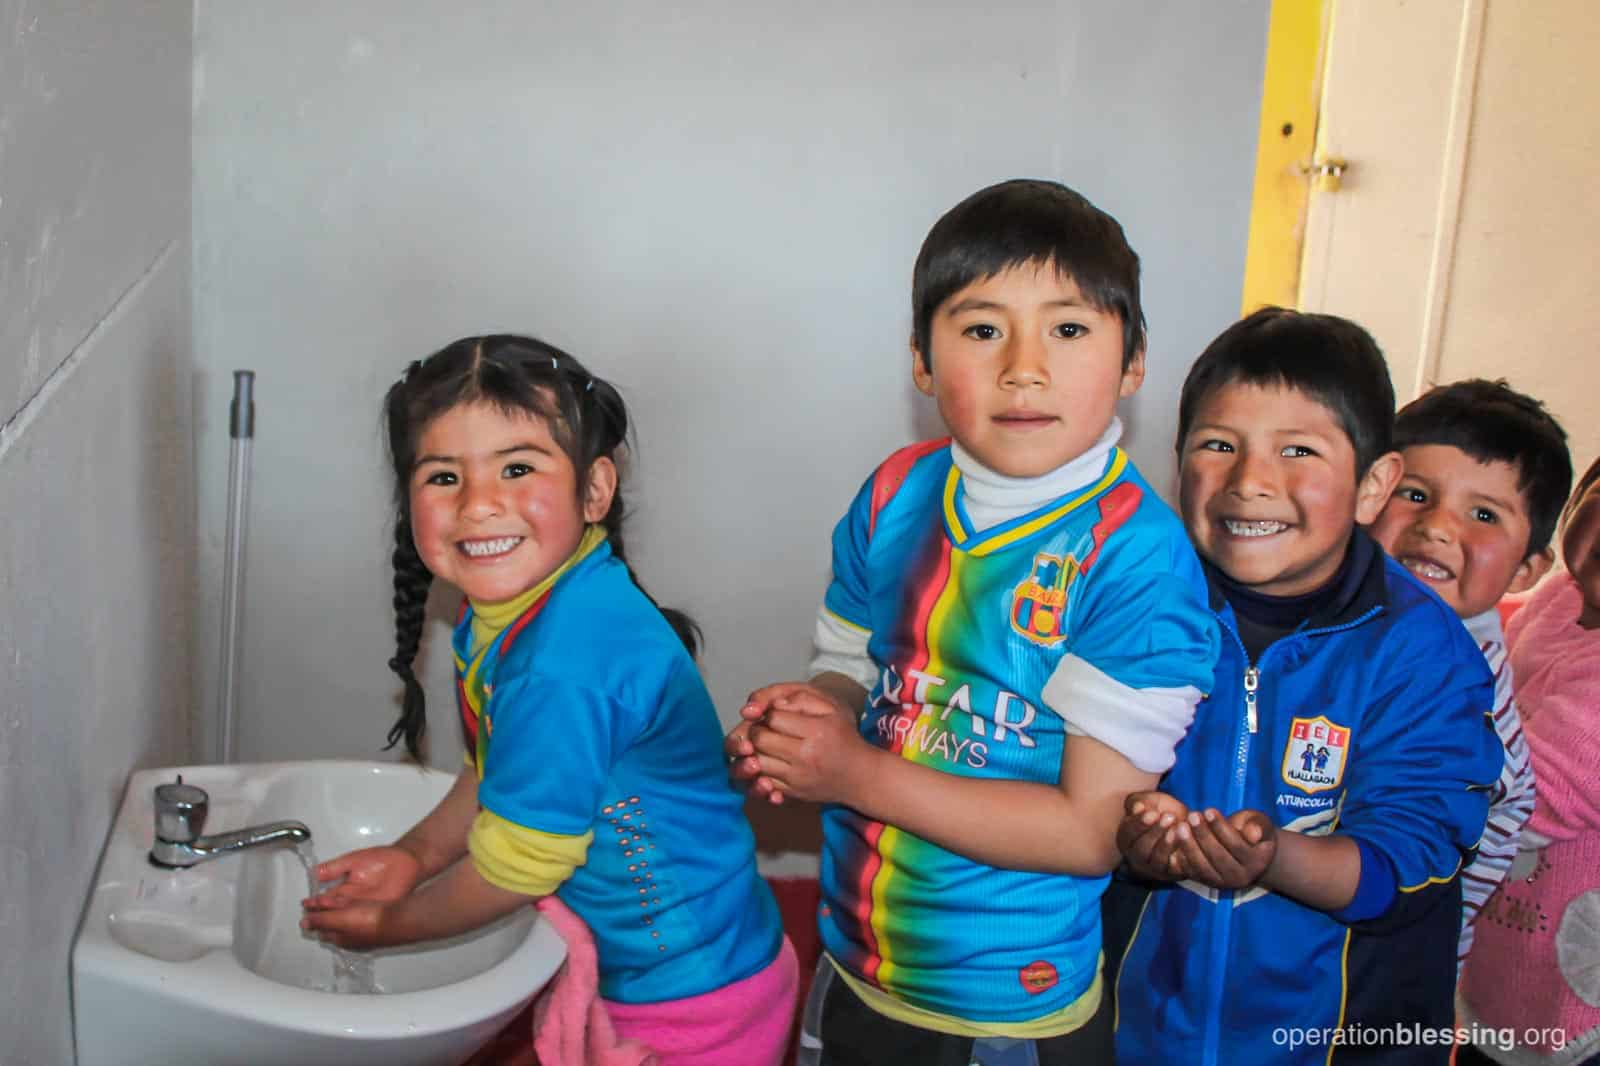 A hand-washing station for the children at Nicol's preschool in Peru.